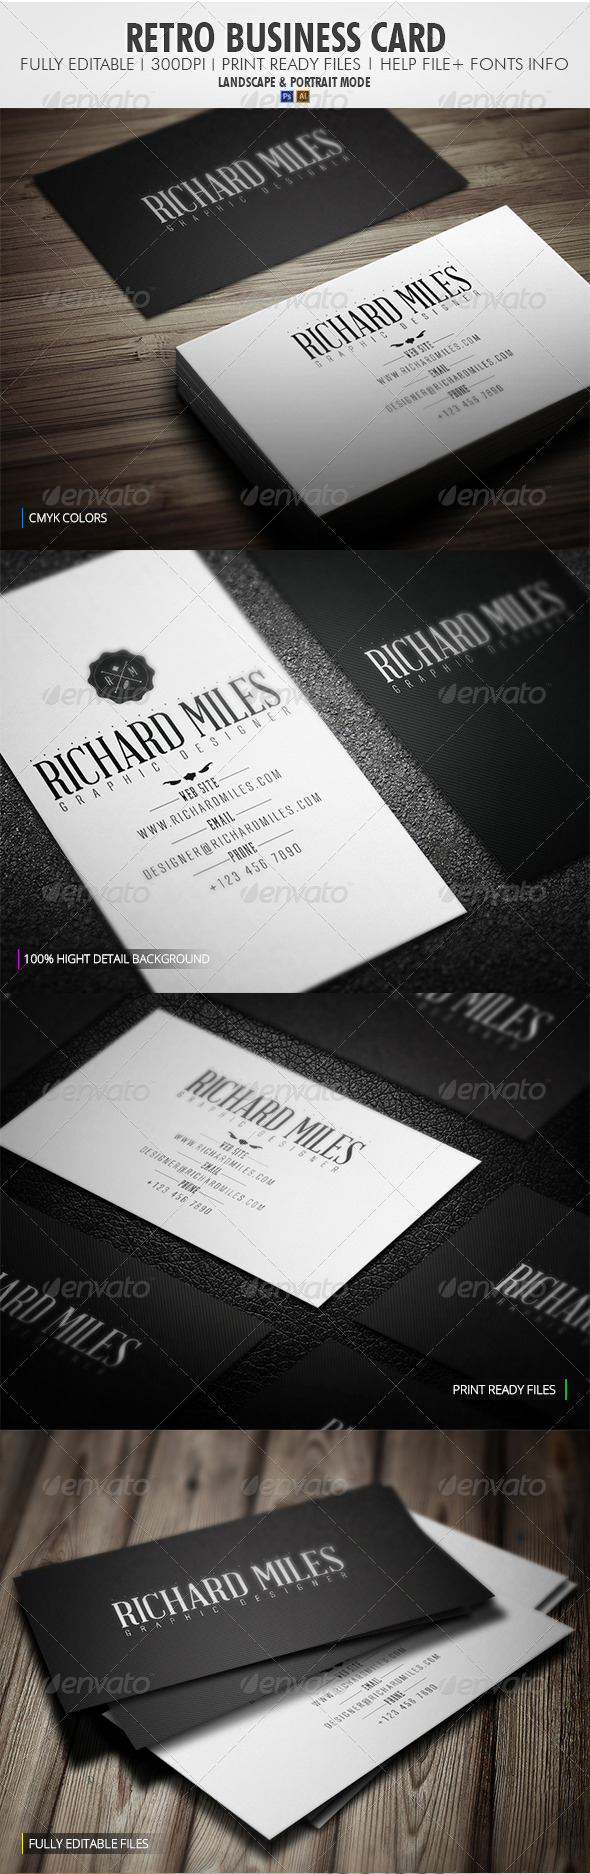 GraphicRiver Retro Business Card 4117119